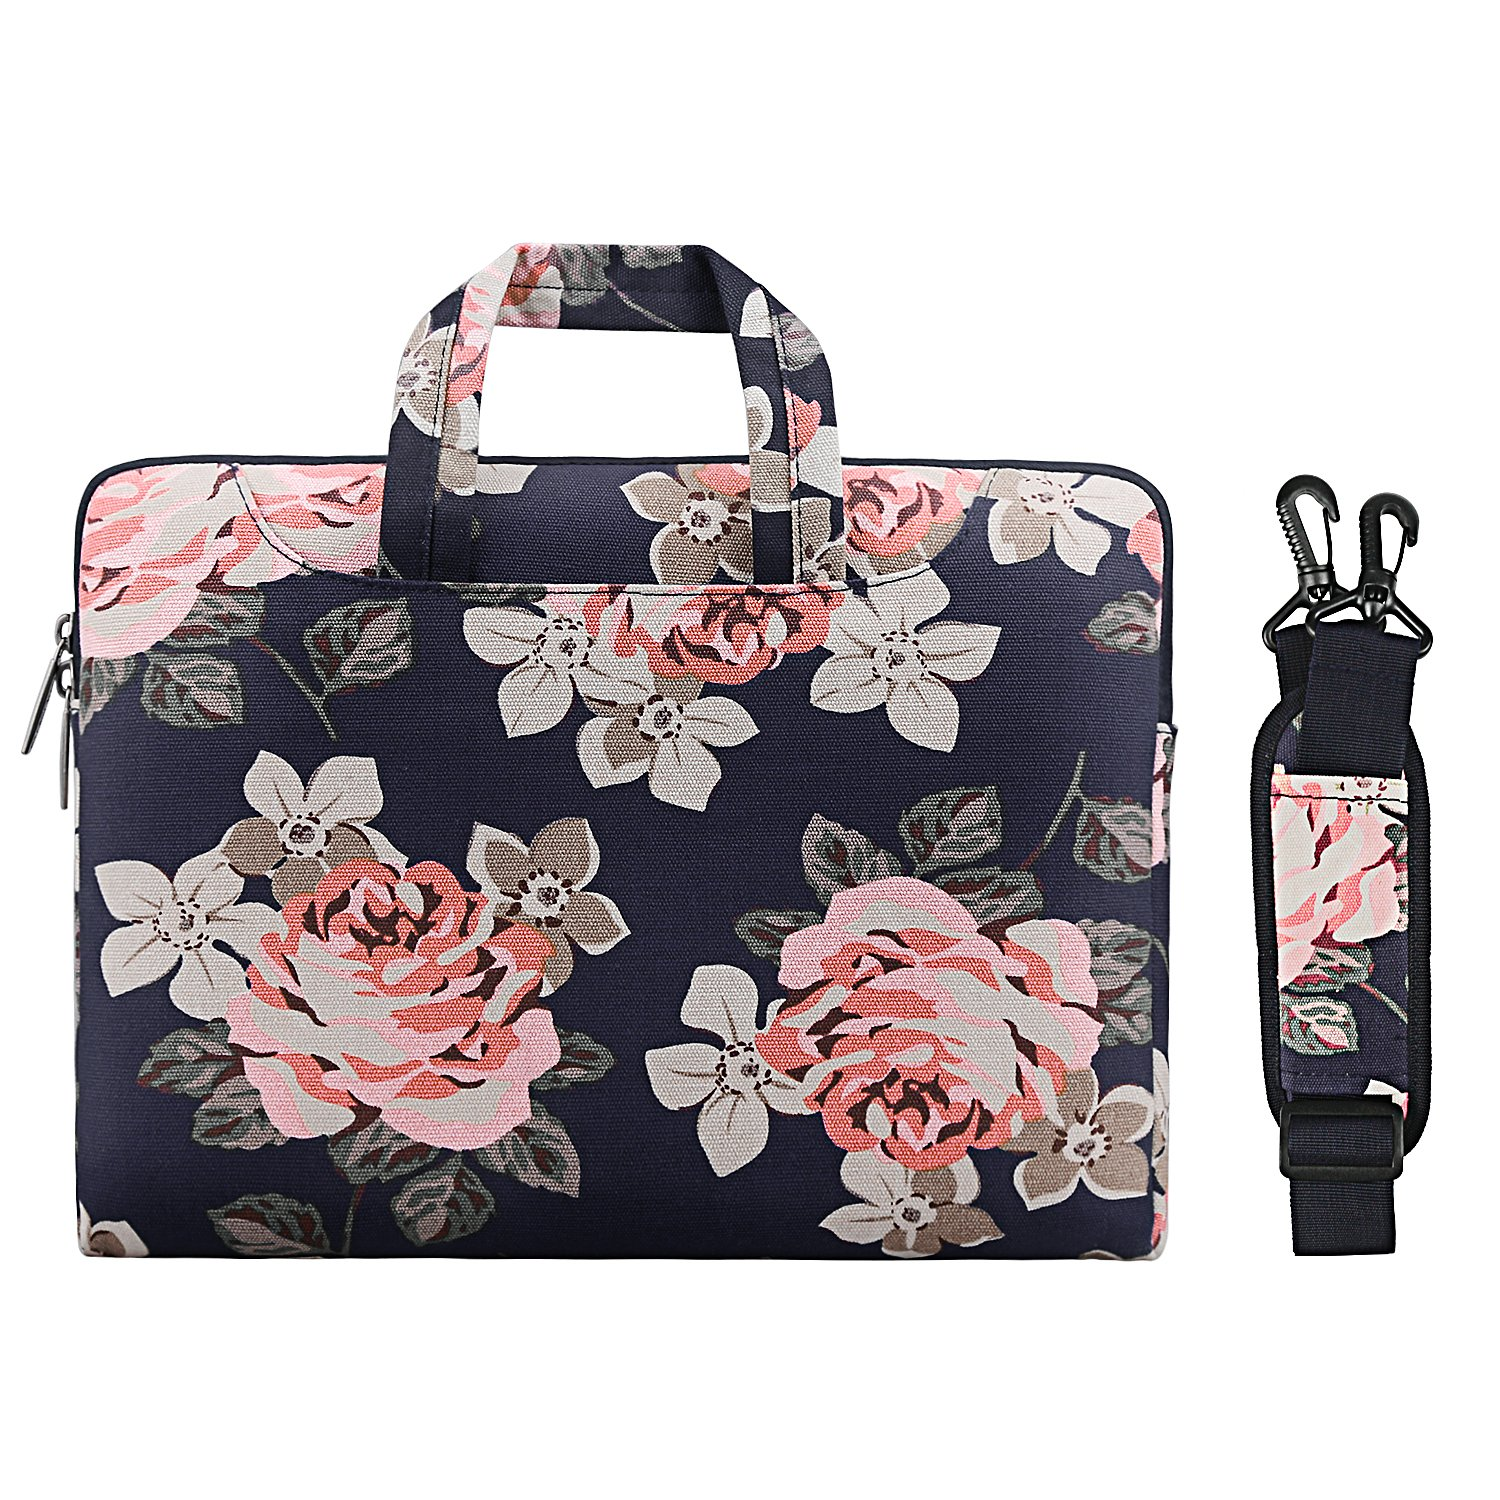 MOSISO Laptop Shoulder Messenger Bag for 11-11.6 Inch MacBook Air, MacBook 12-Inch, 13 Inch New MacBook Pro Touch Bar 2018/2017/2016 (A1989/A1706/A1708), Rose Pattern Canvas Handbag Sleeve Case, Gray